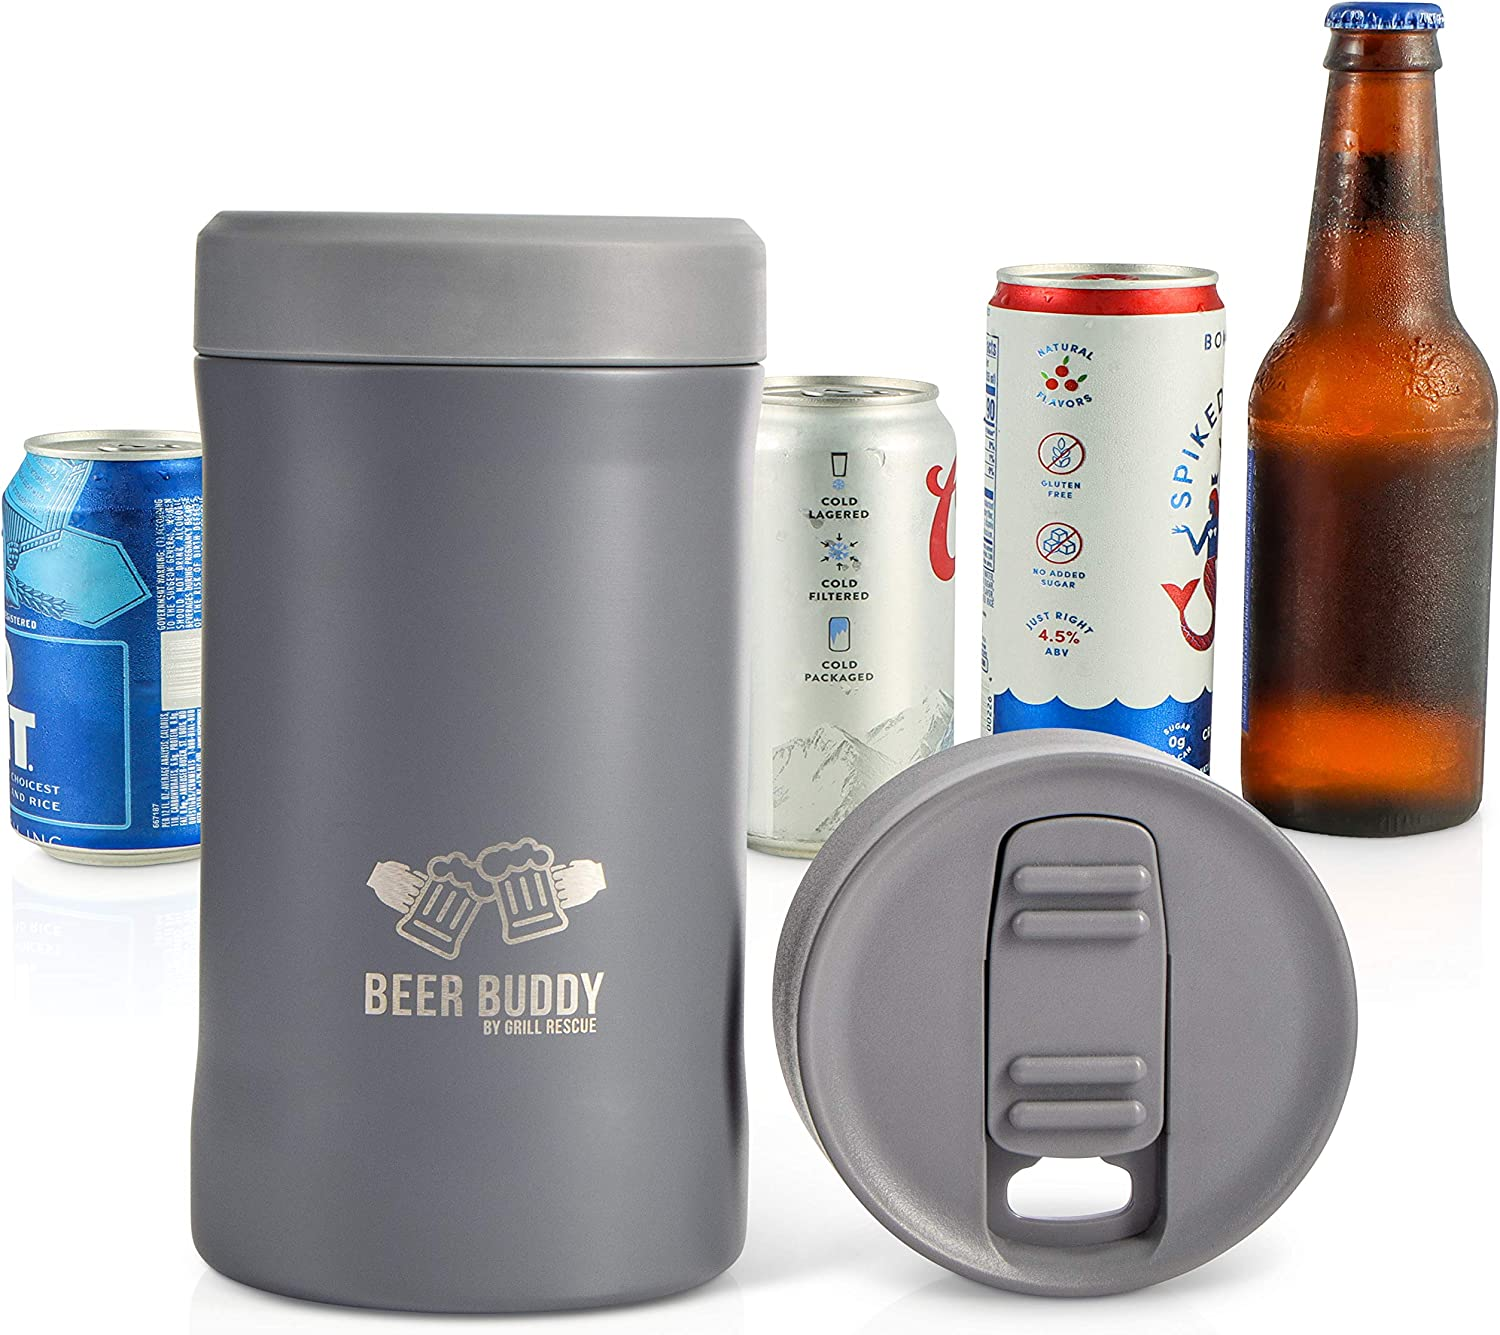 Beer Buddy Insulated Can Holder – Vacuum-Sealed Stainless Steel – Beer Bottle Insulator for Cold Beverages – Thermos Beer Cooler Suited for Any Size Drink - One Size Fits All (Matte Gray)